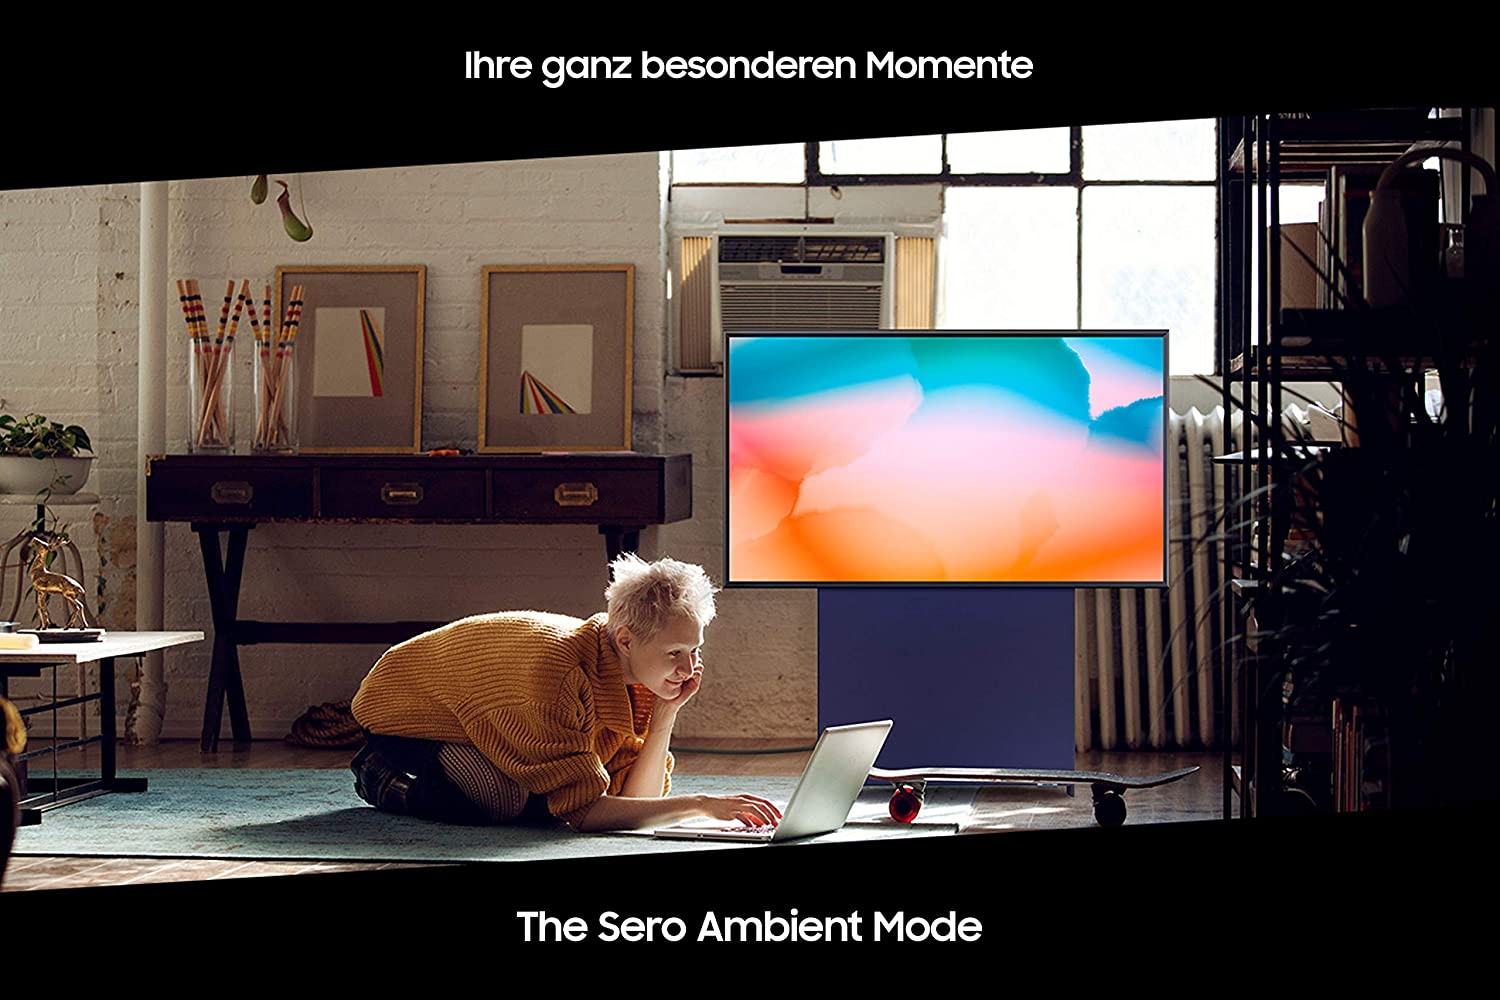 Samsung Qled 4k The Sero 43 Inch Rotating Screen 4 1 Channel Sound System Ai Upscaling Home Cinema Tv Video